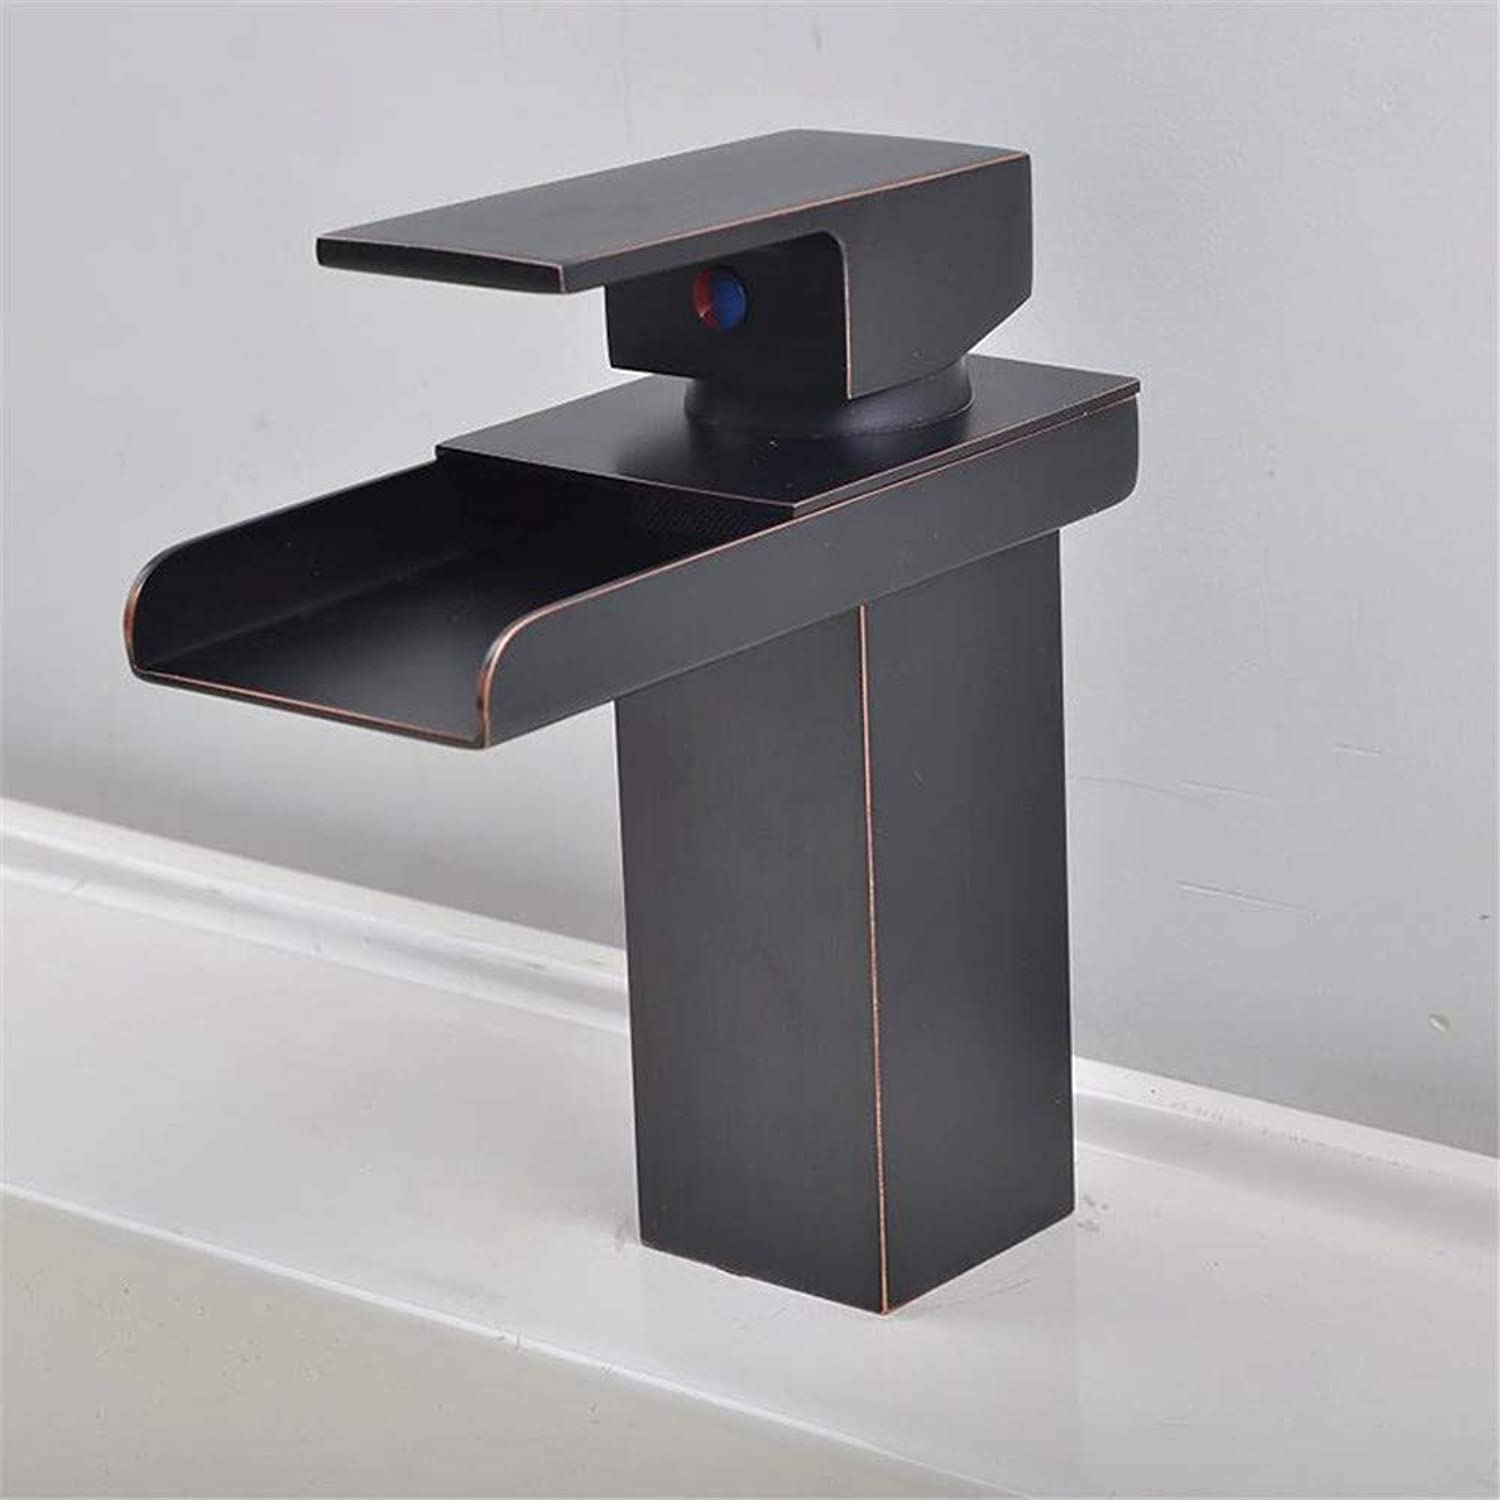 Black Waterfall Faucet Basin Faucet Old Faucet Wide Mouth Basin Faucet Bathroom Faucet Hot and Cold Water (color   -, Size   -)